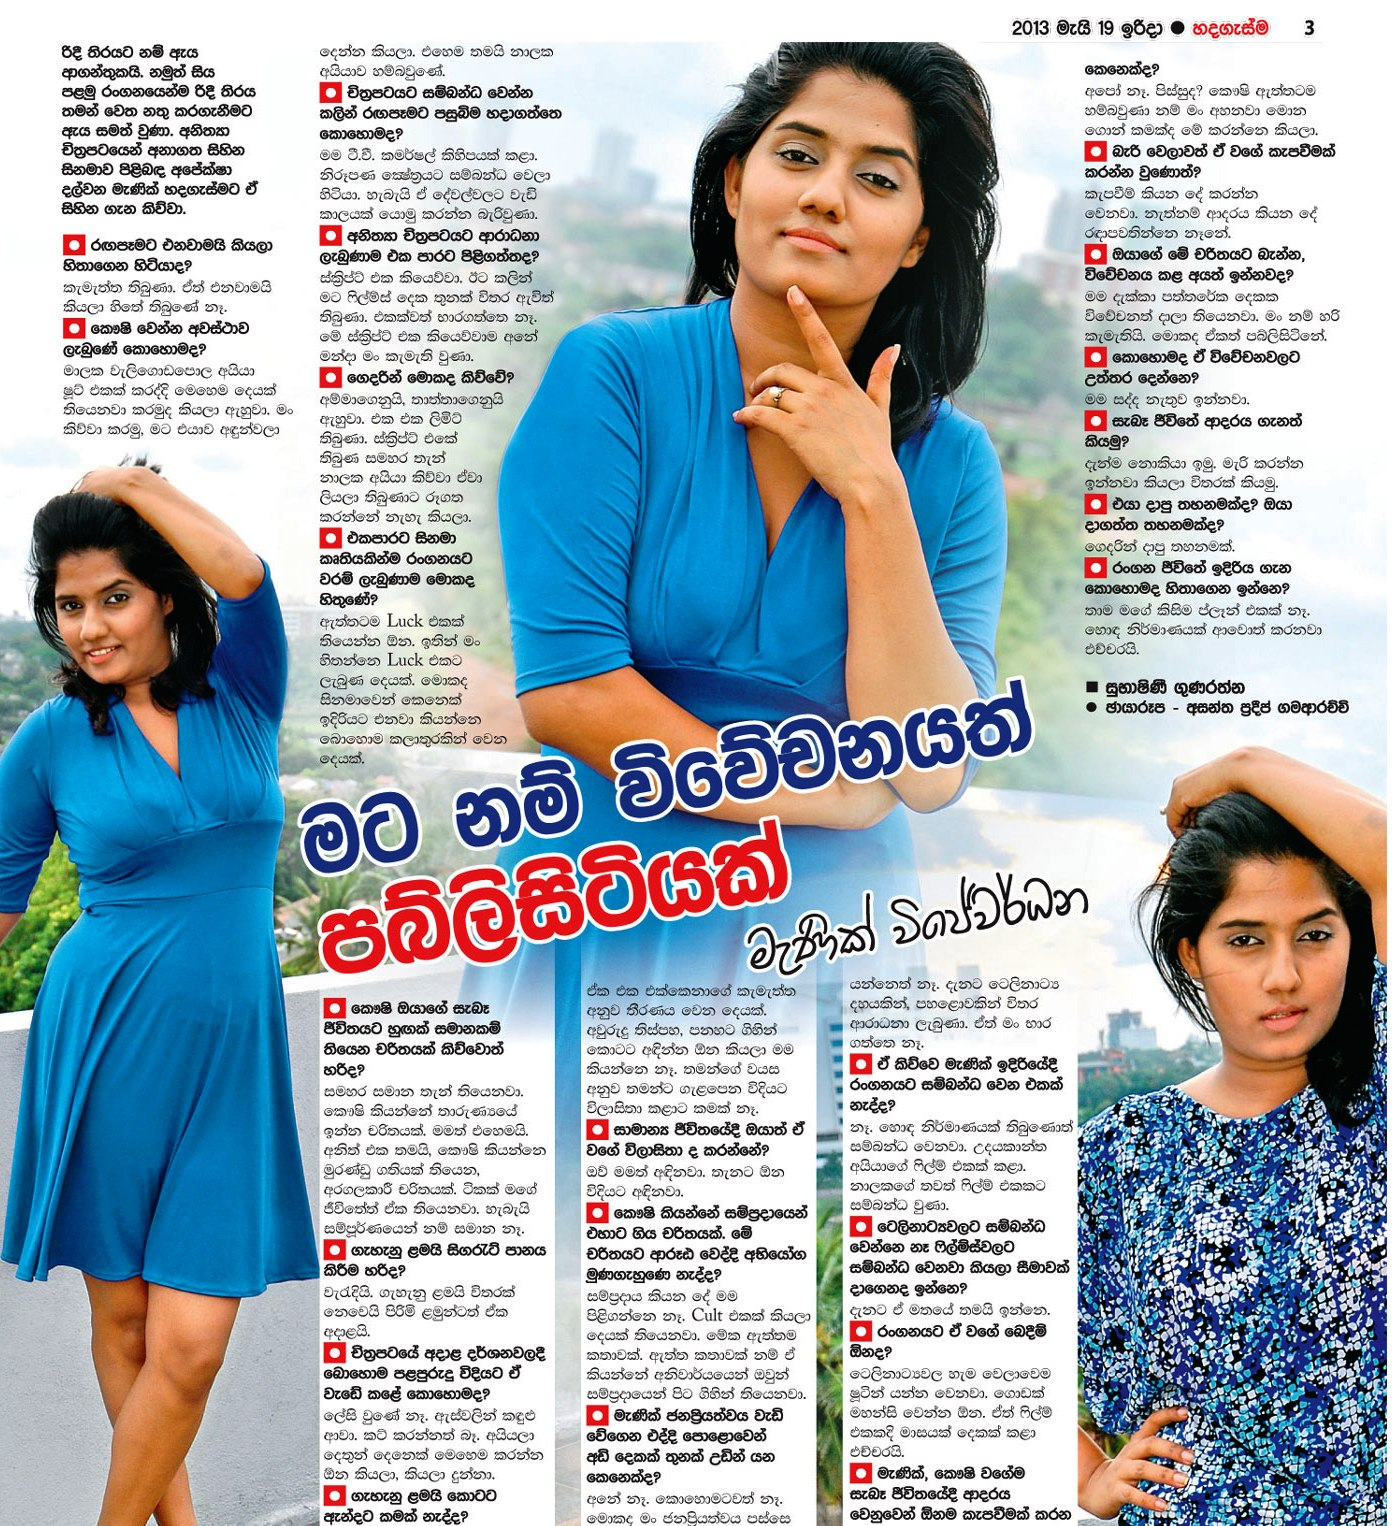 manik wijewardana's interview about leaked photos with boyfriend